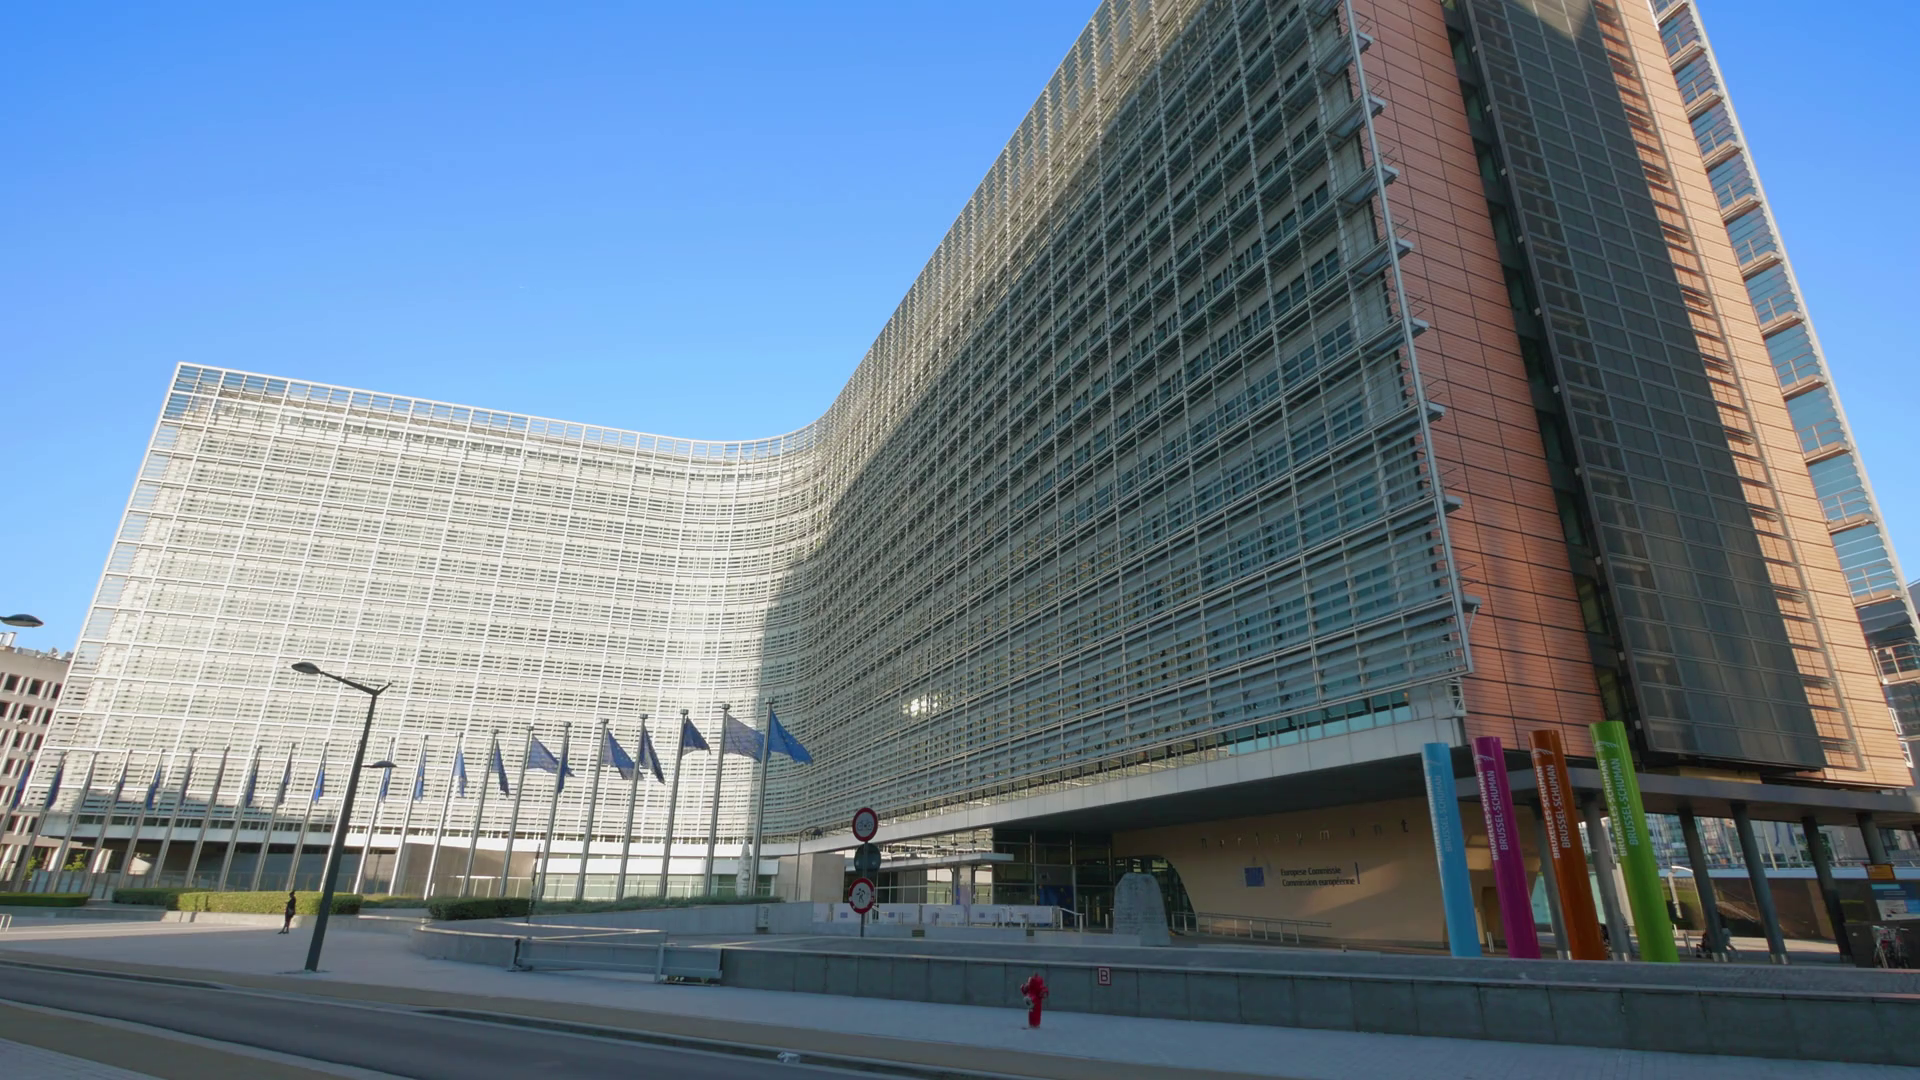 berlaymont-office-building-european-commission-eu-union-flags-waving-brussels-belgium-sunny-day_hg9ptzc5_thumbnail-full01.png